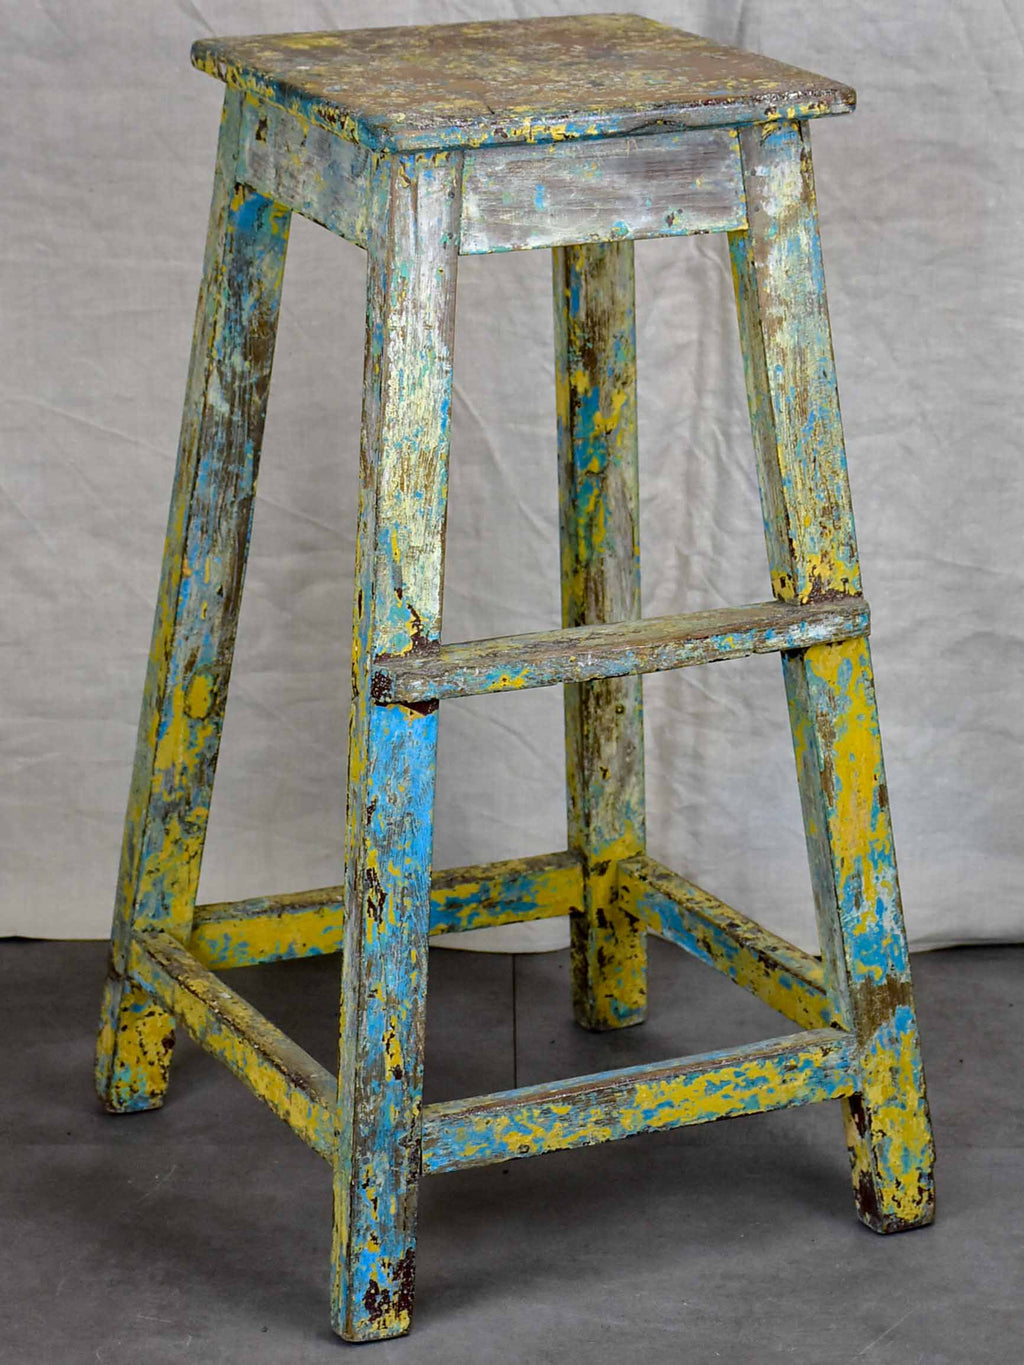 Antique French sculptor's table / high stool - 1 of 2